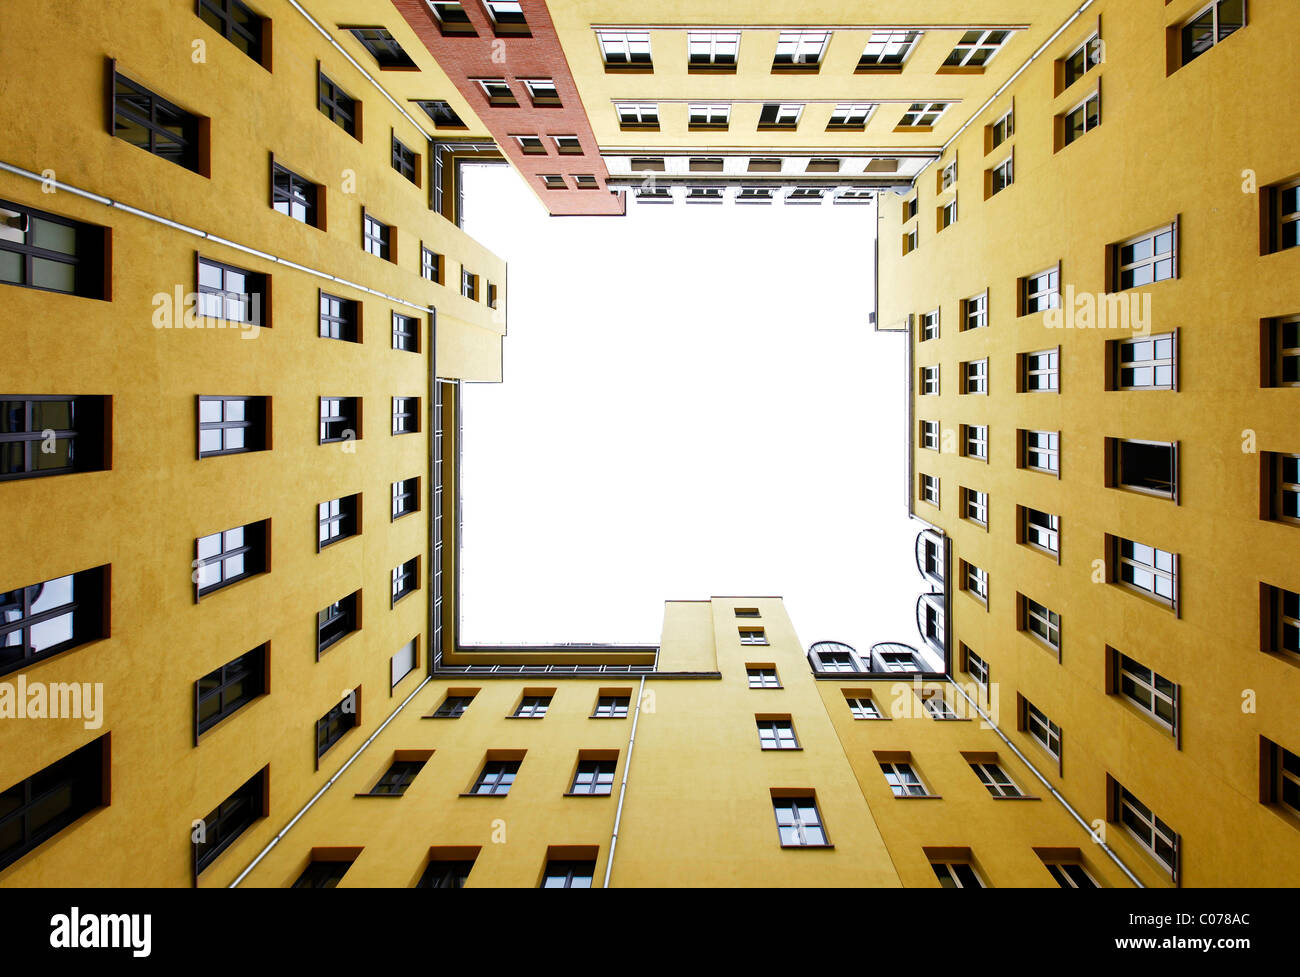 Courtyard of a city block in Mitte district, Berlin, Germany, Europe Stock Photo